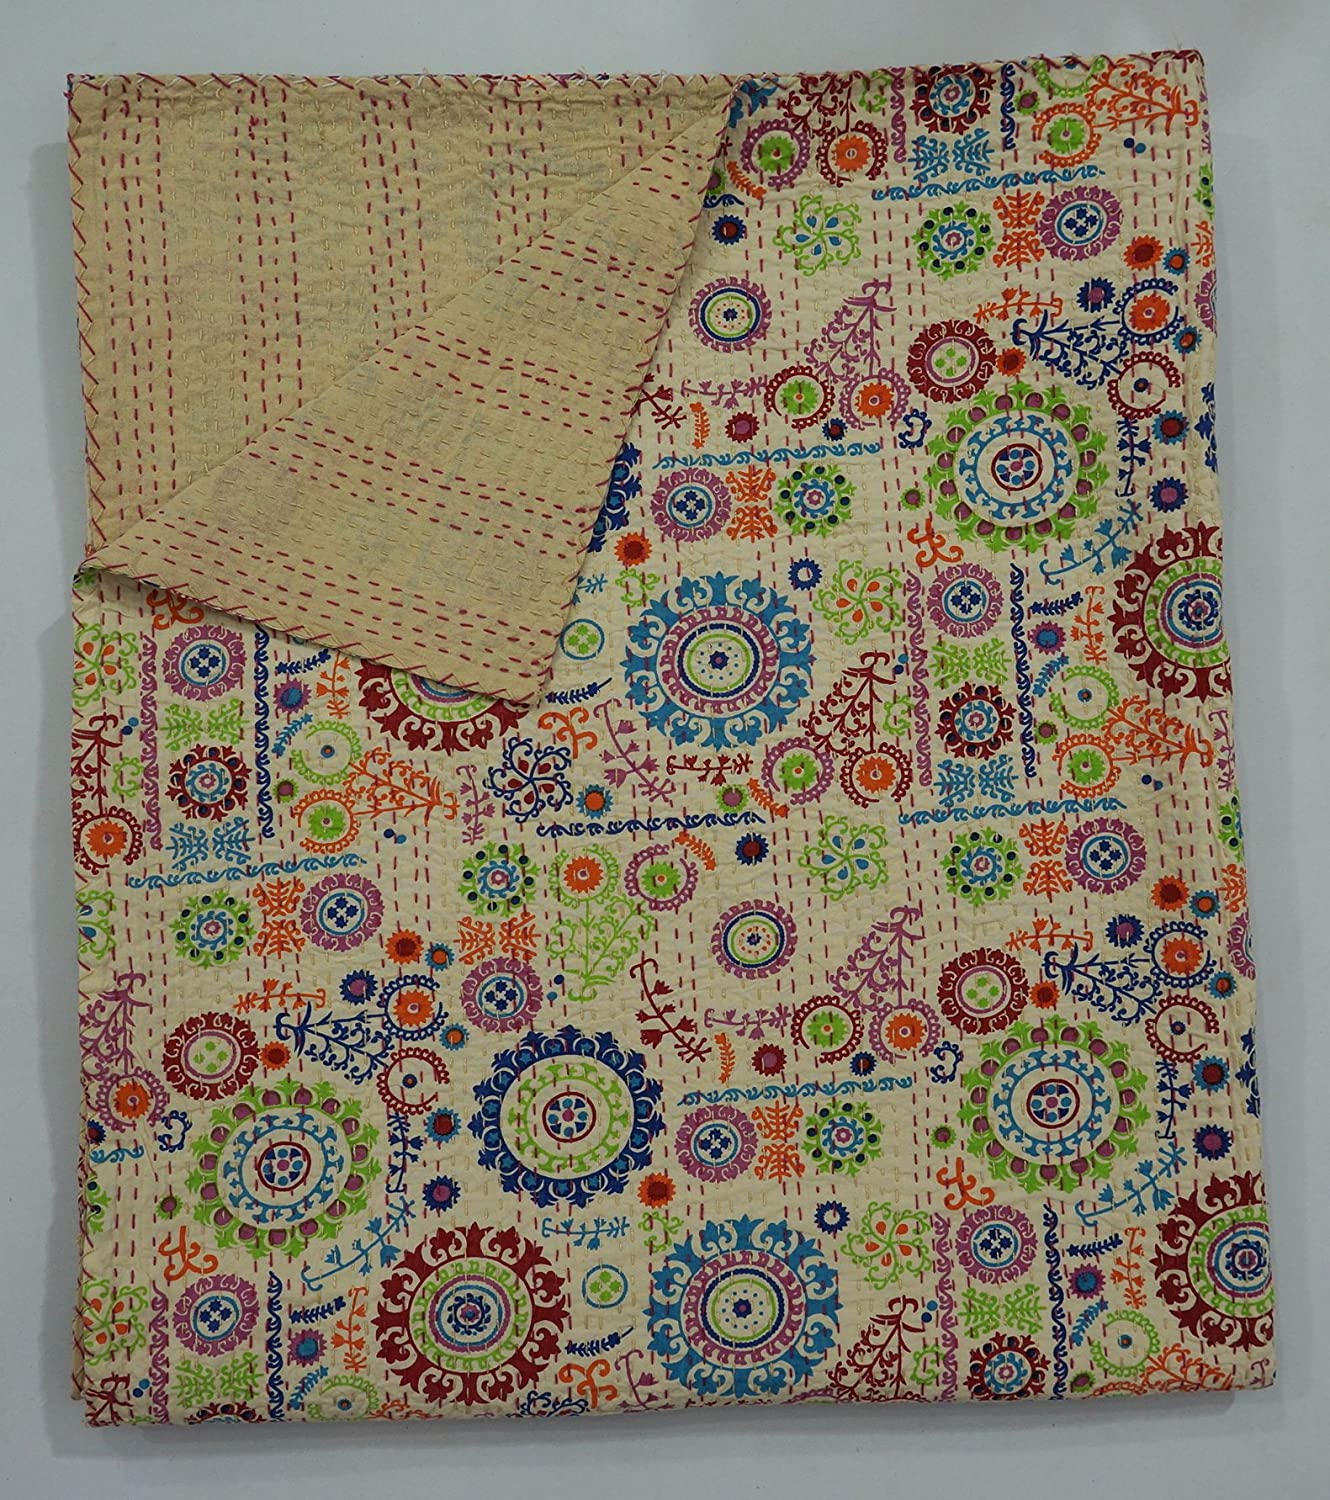 The Ethnic Crafts Beige Floral Print Quil Handmade Kantha Some reservation Suzani National uniform free shipping